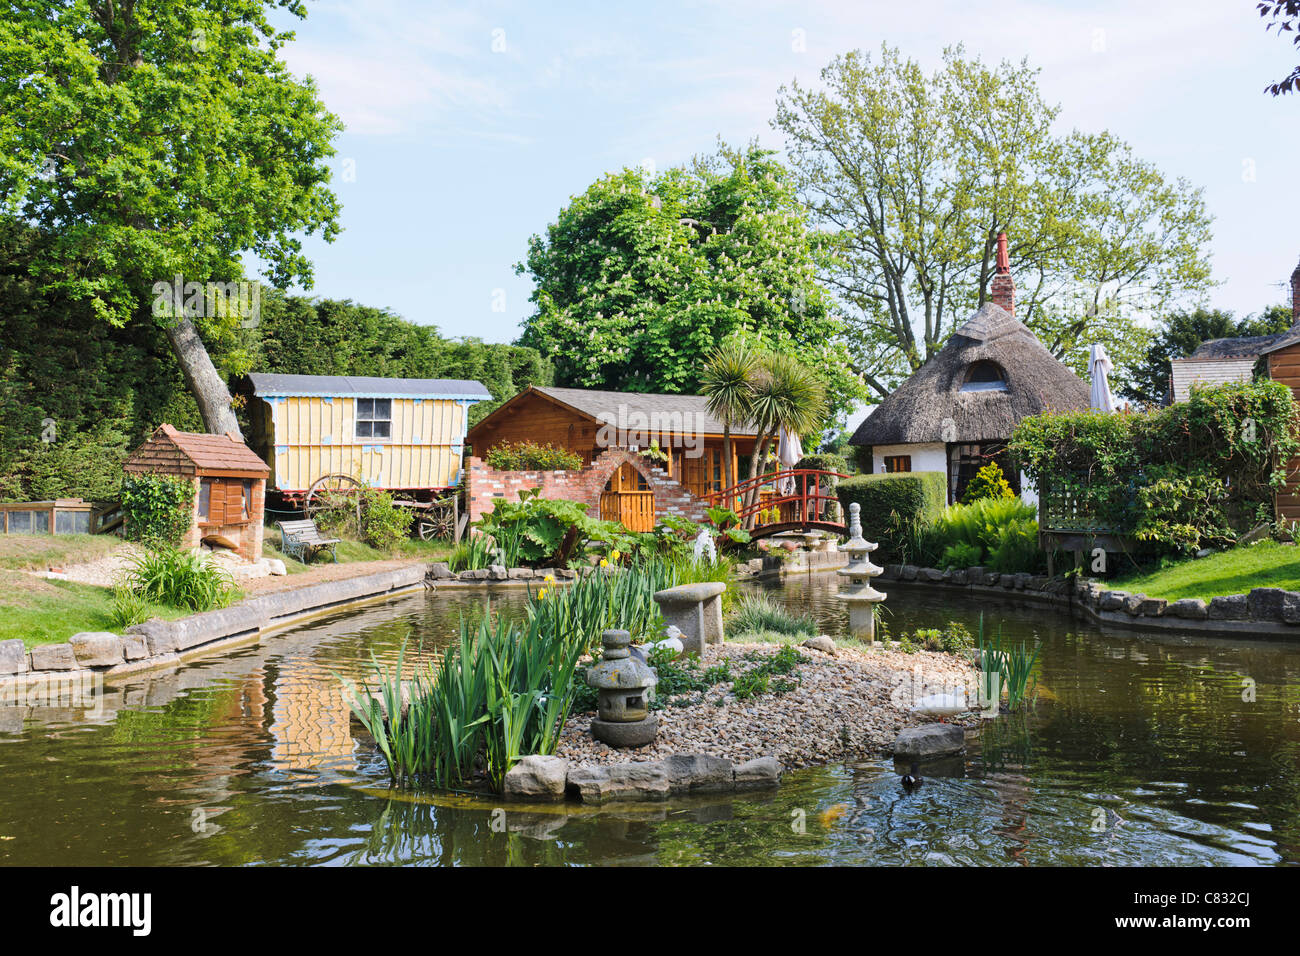 Water Garden, New Forest National Park - Stock Image